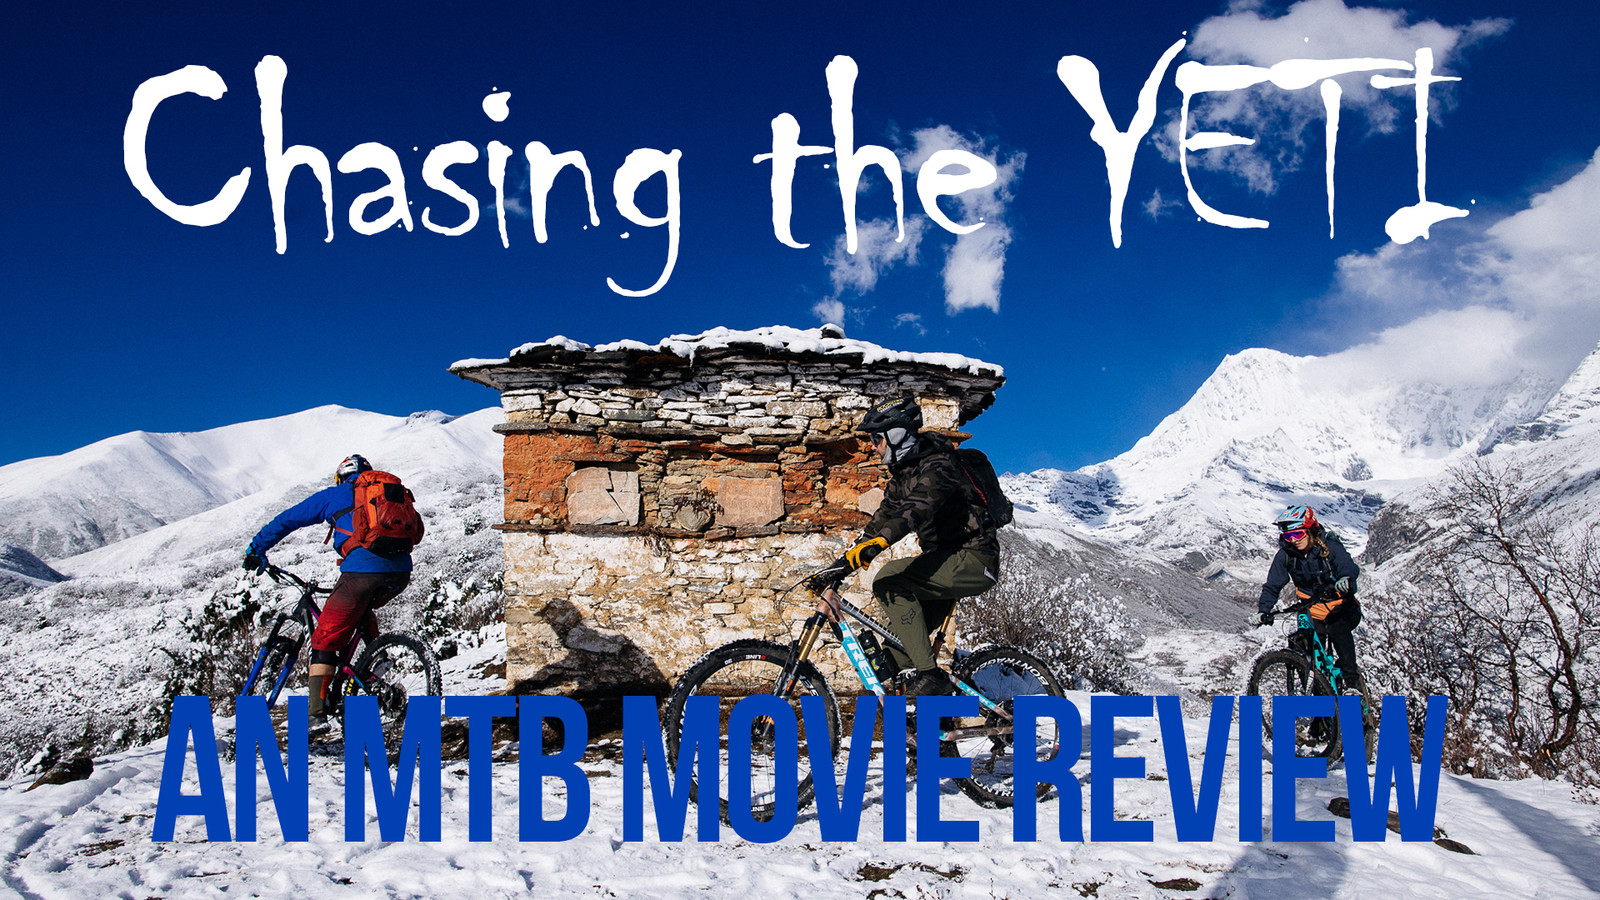 Chasing the Yeti - A Mountain Bike Movie Review